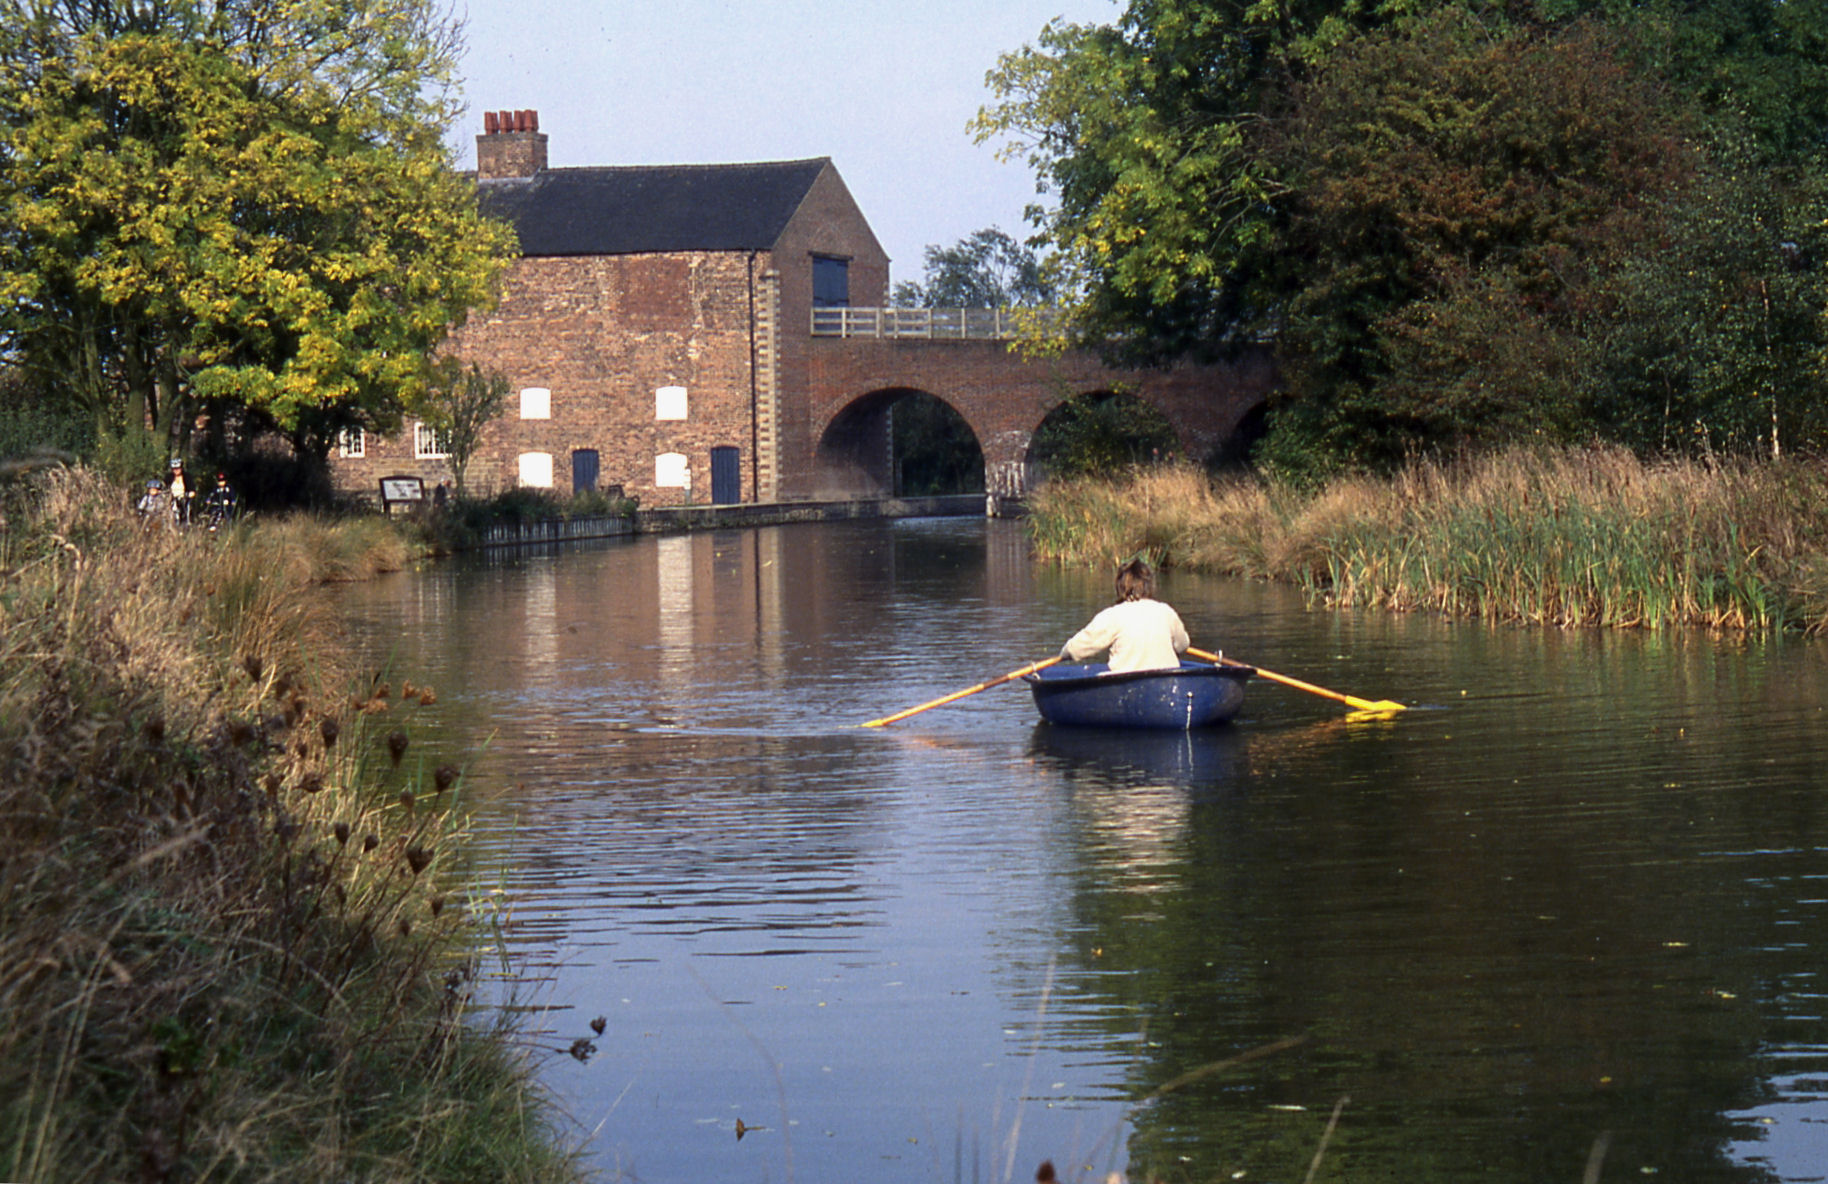 Small rowing boat on Ashby Canal, with Moira Furnace in the background